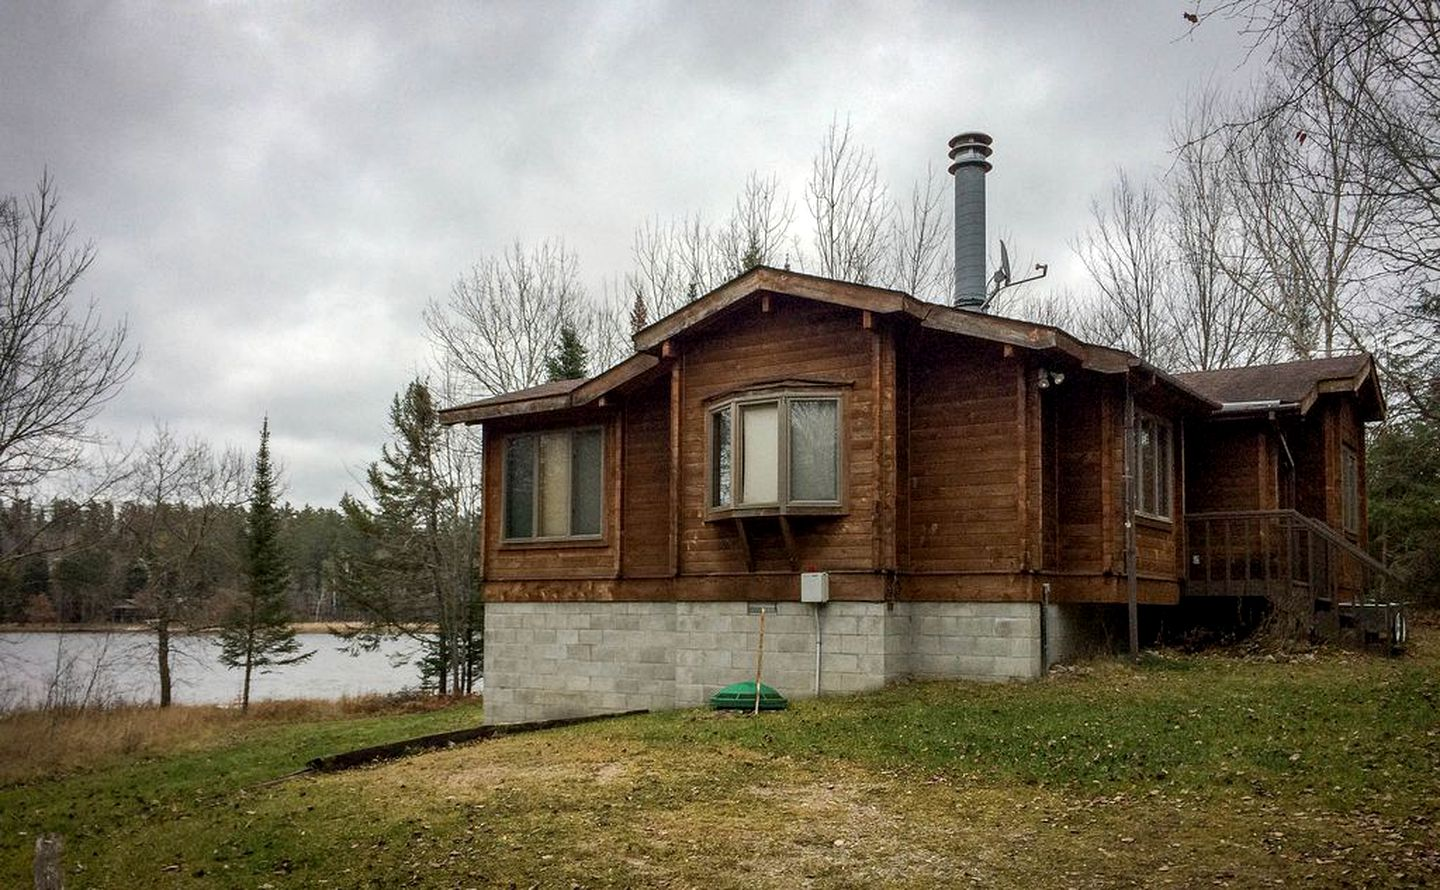 Cabins (Crane Lake, Minnesota, United States)